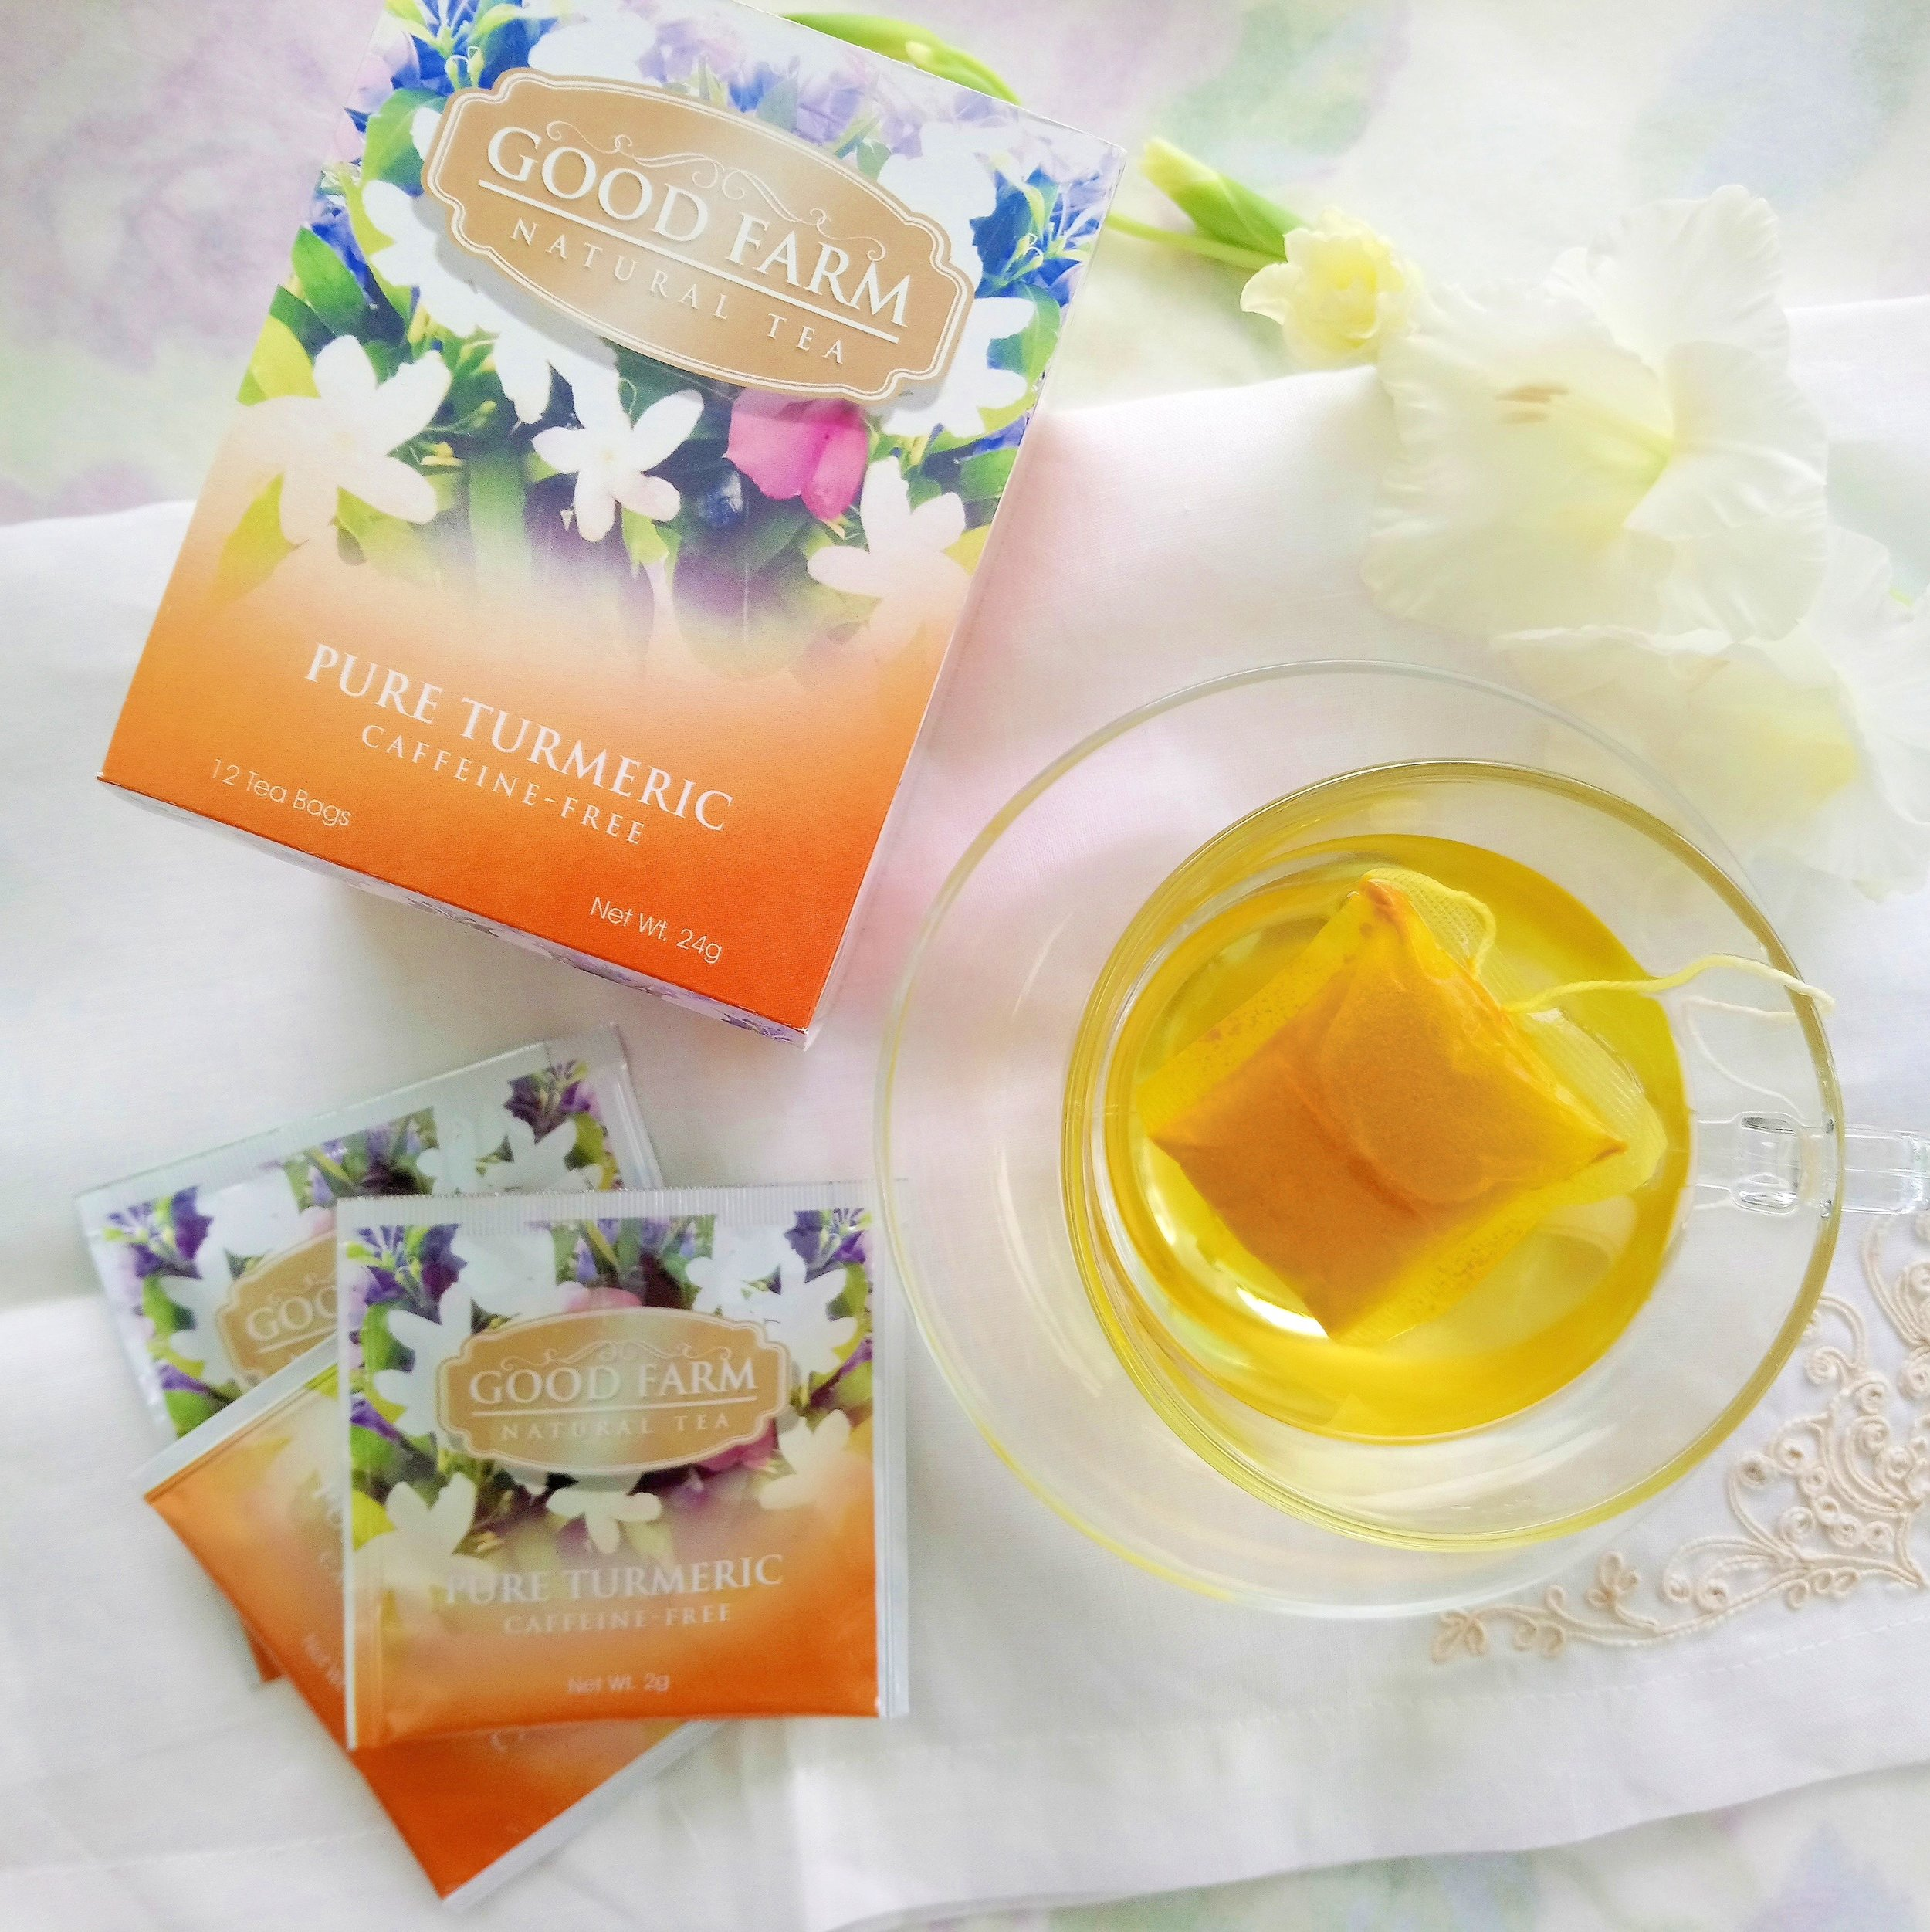 Good Farm Tea Box & Cup Lucid.JPG